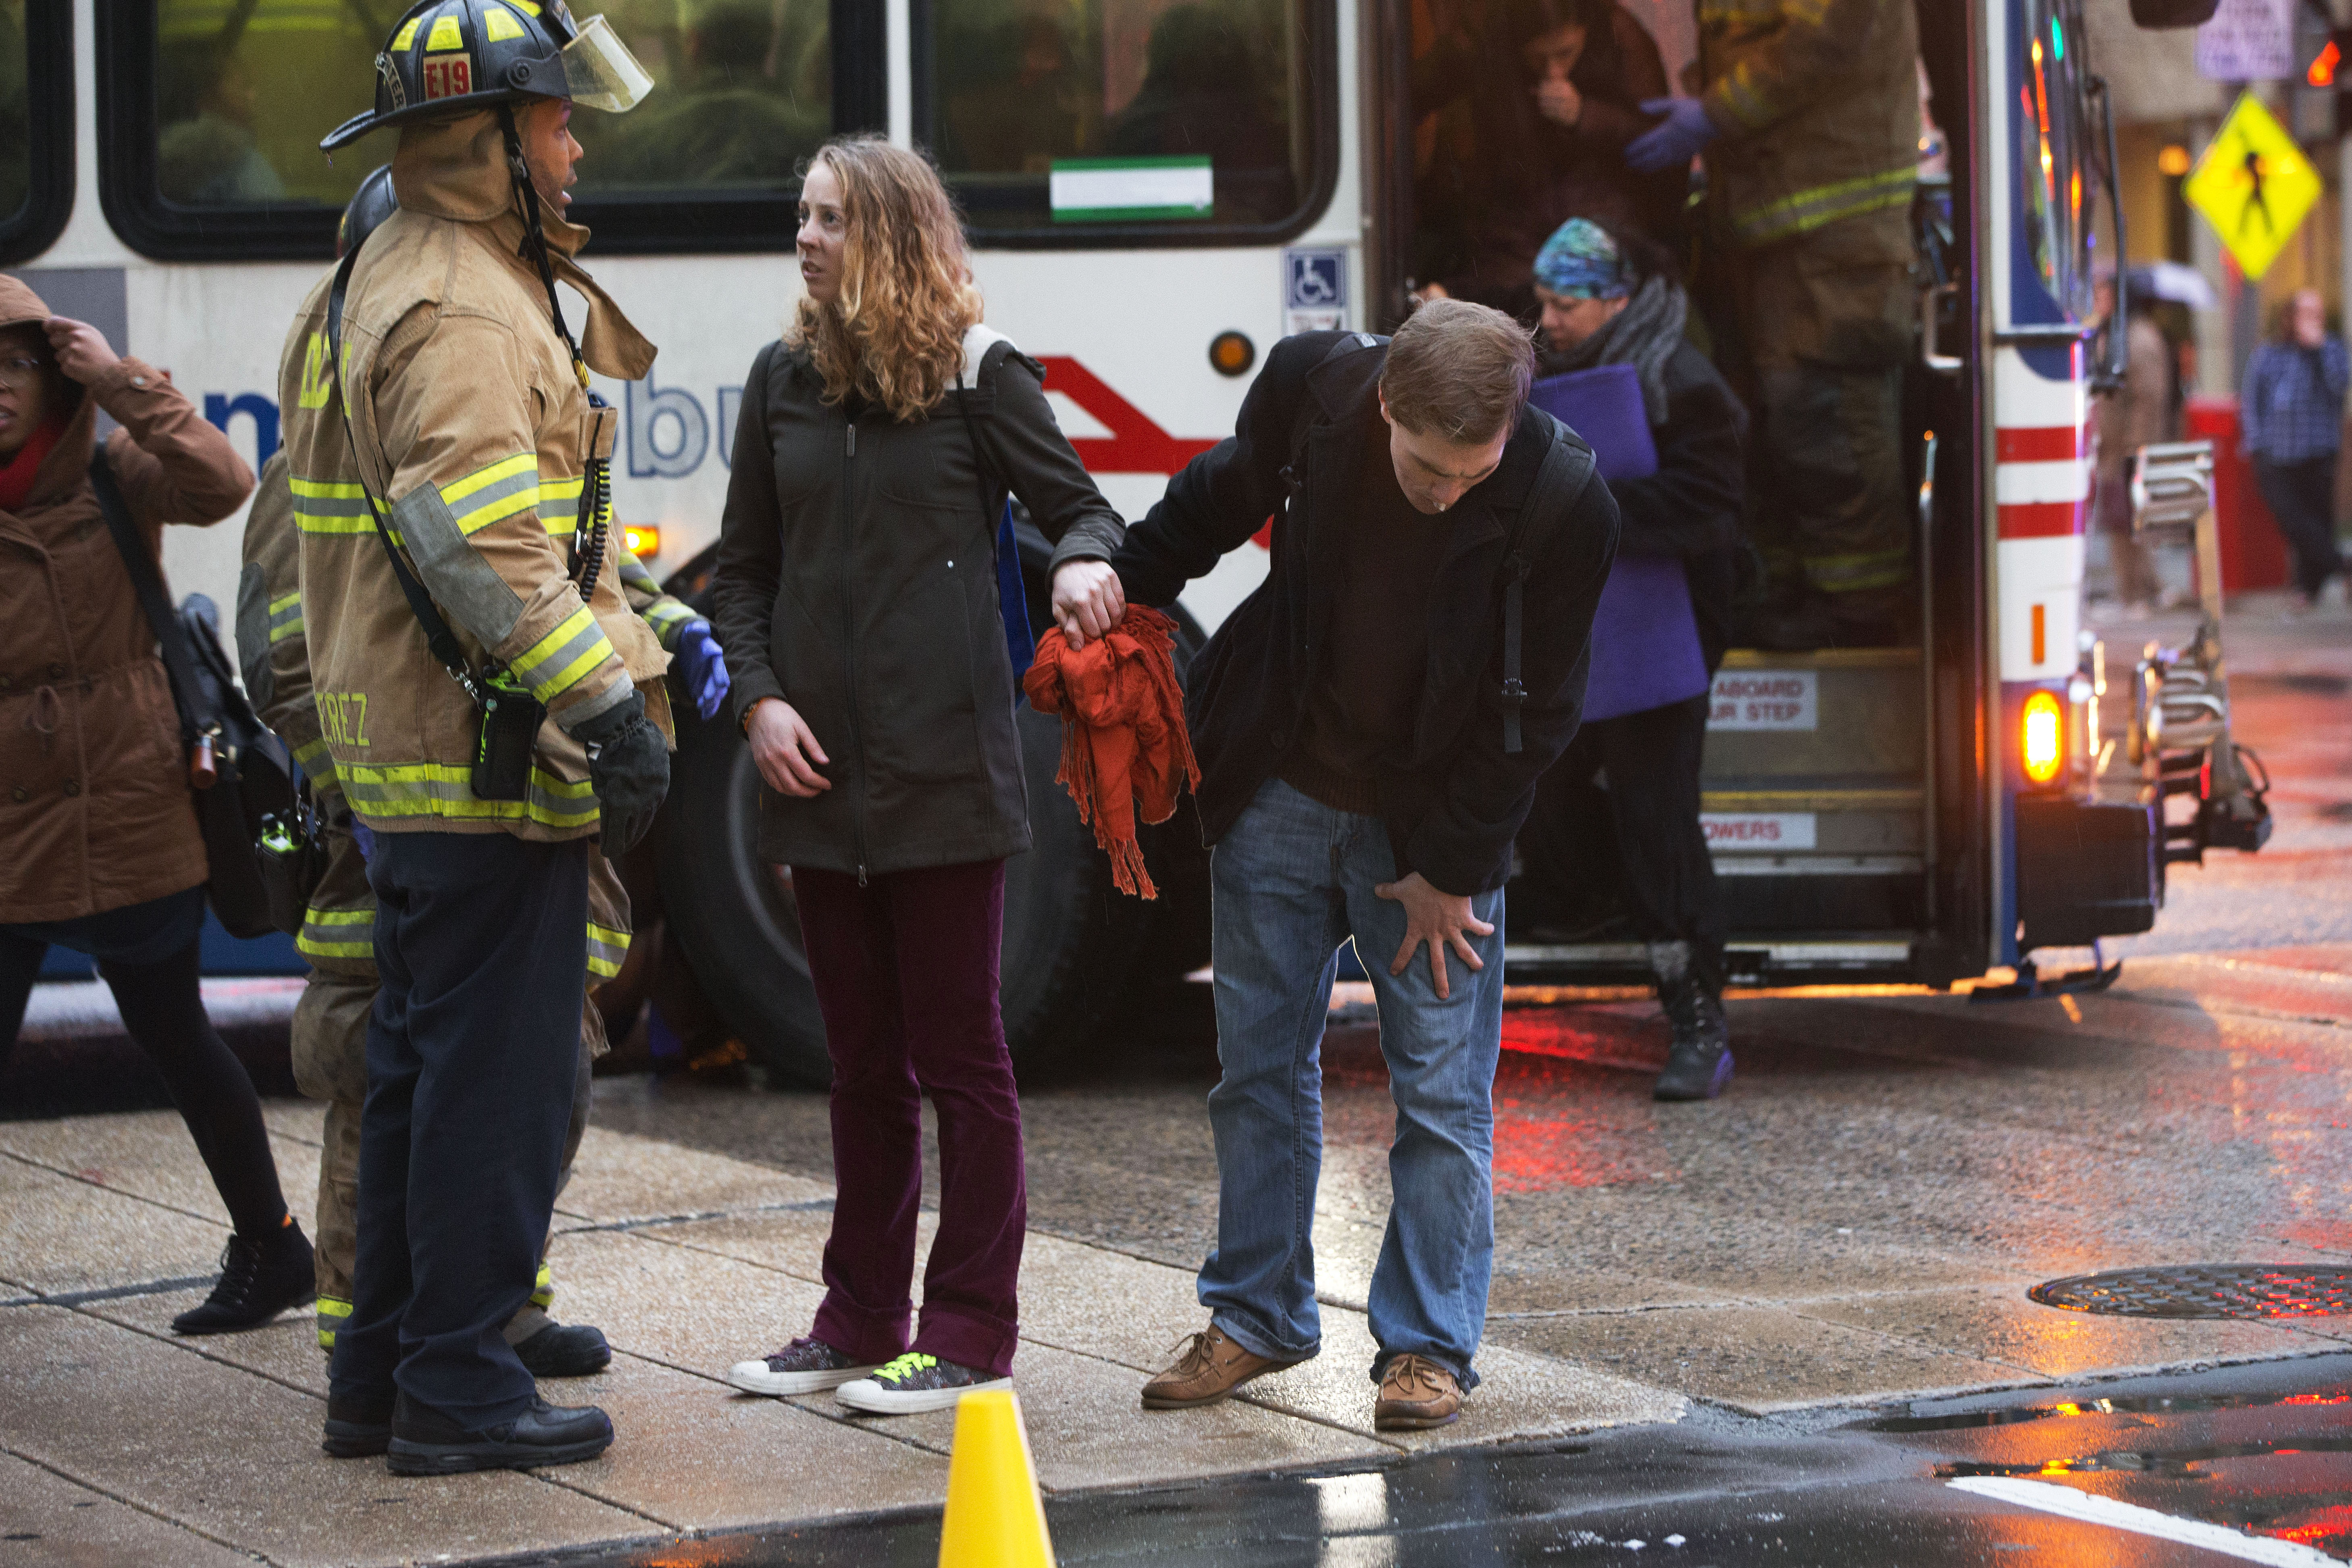 Former NTSB chair says Metro safety lapse was 'absolutely insane'